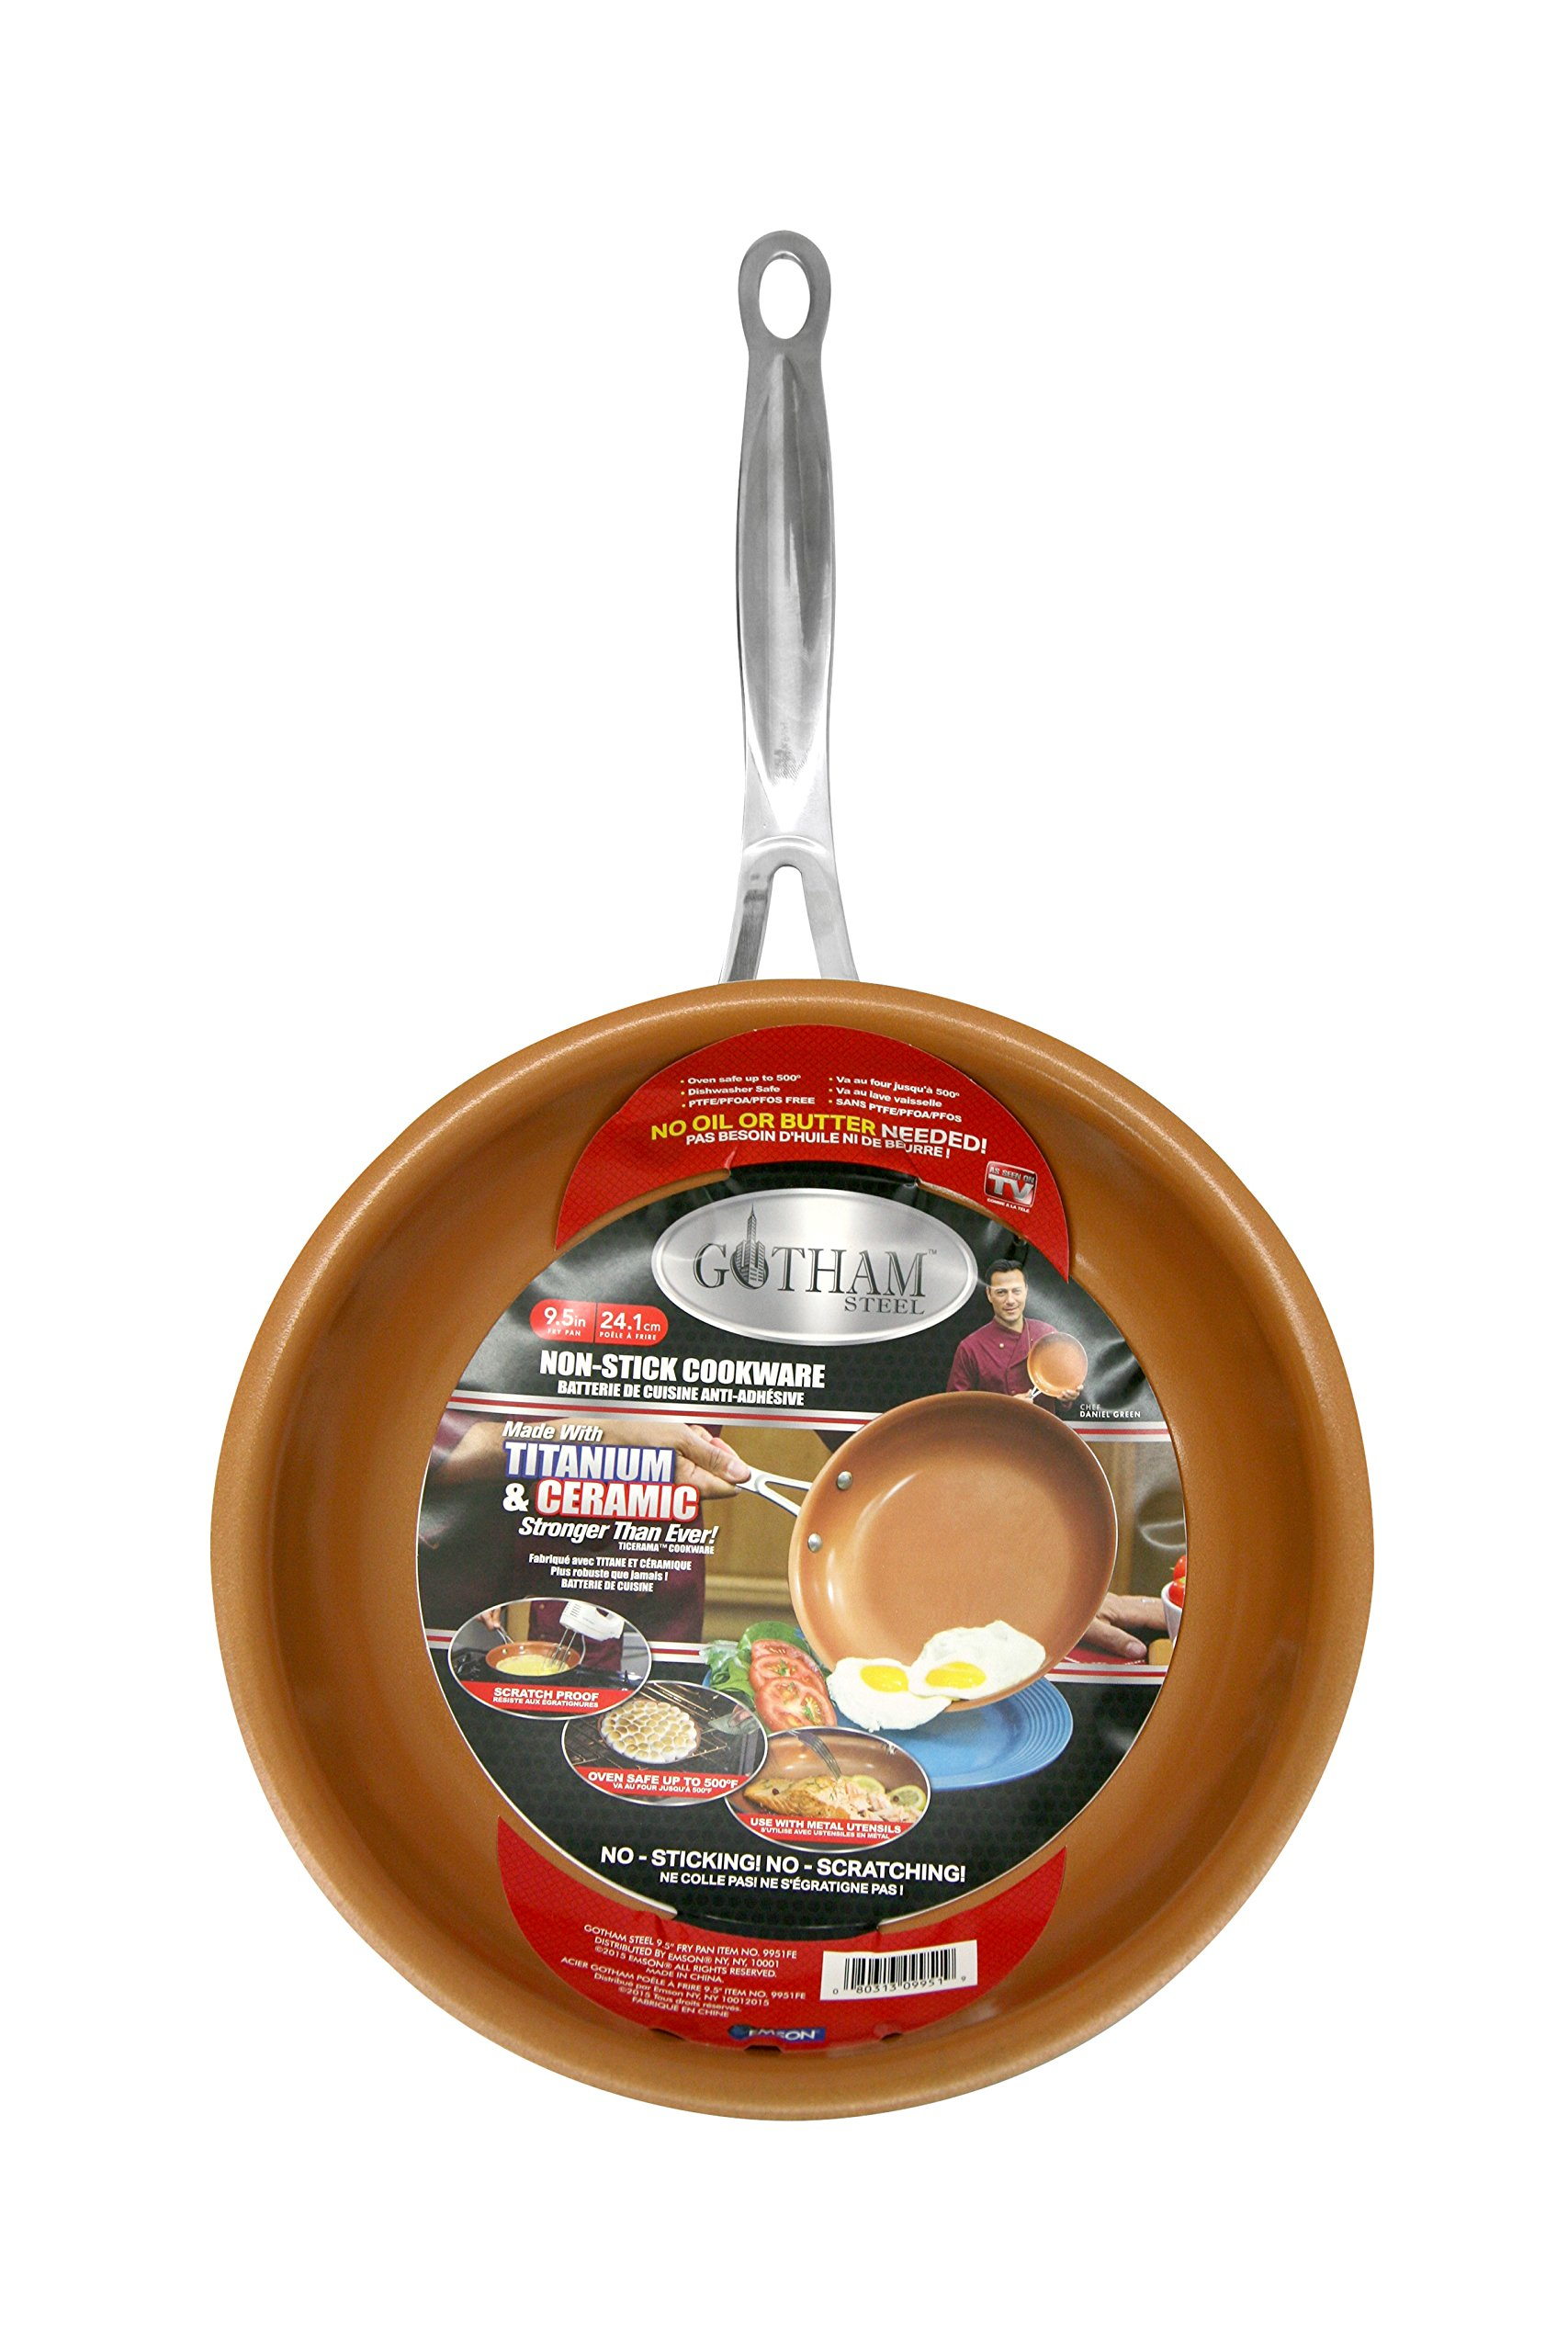 Gotham Steel 9.5'' Fry Pan with Ultra Nonstick Titanium and Ceramic Copper Coating by Chef Daniel Green, Dishwasher, Metal Utensil and Oven Safe by GOTHAM STEEL